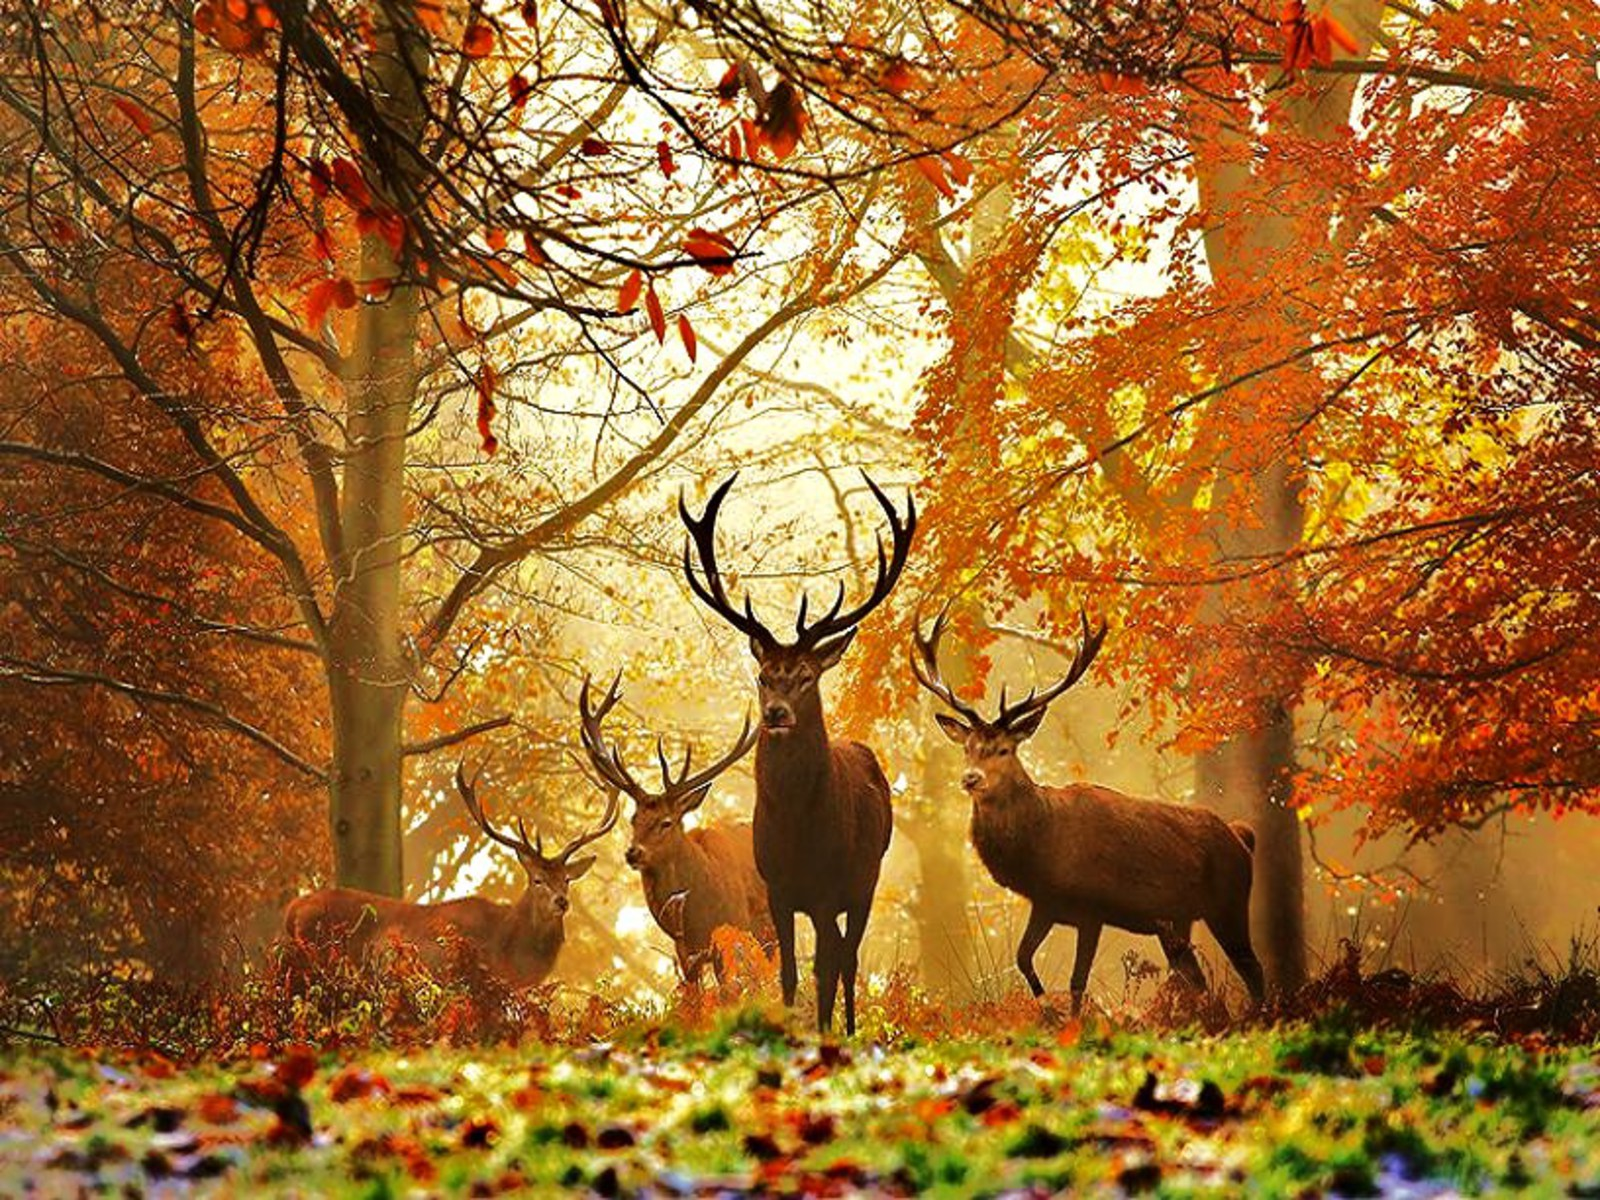 Wallpapers deer wallpapersdeer wallpaperwhitetail deer wallpaper 1600x1200